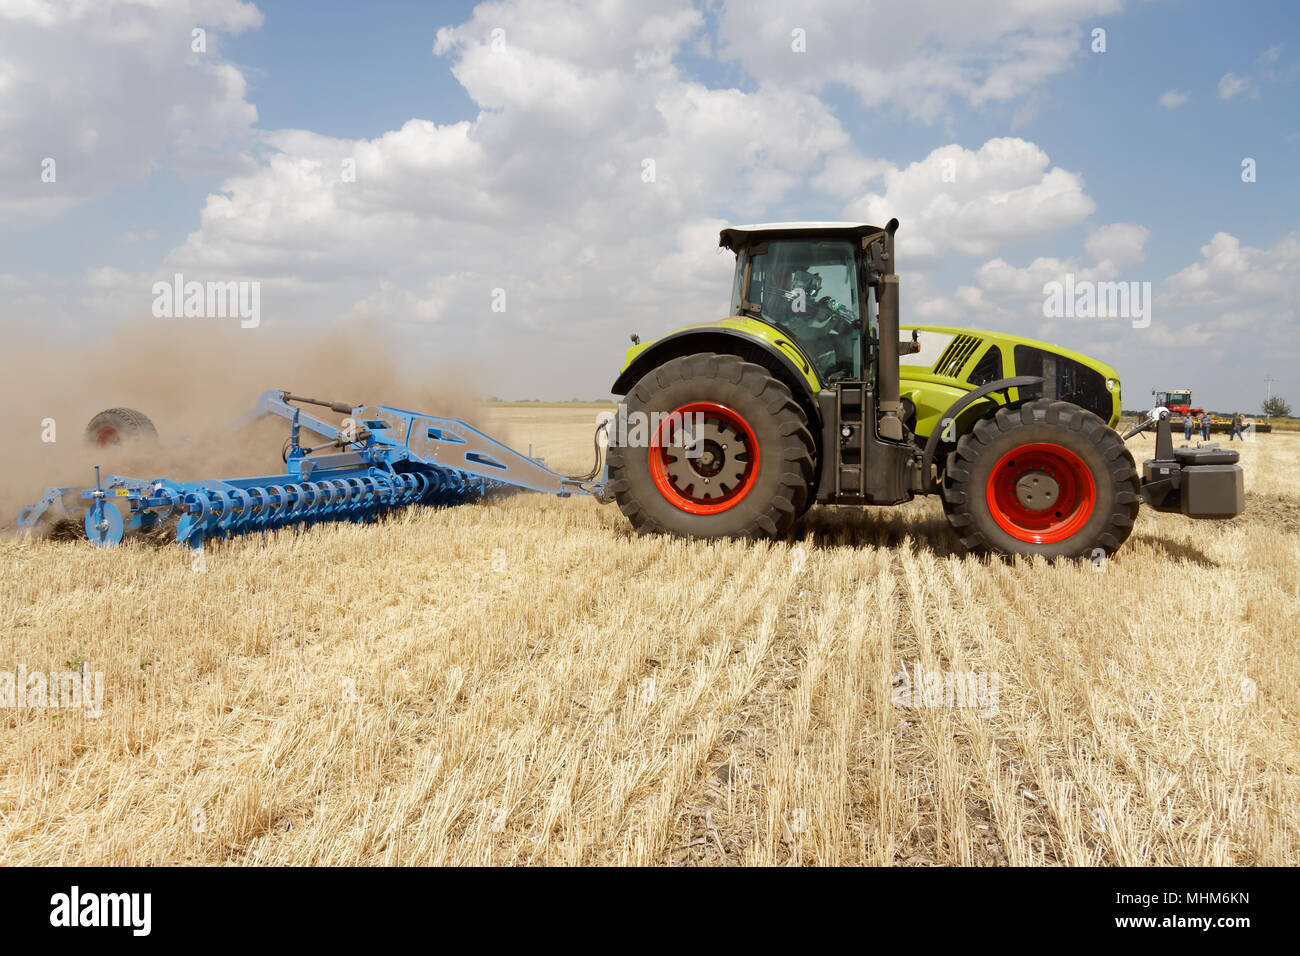 Tractor preparing land with plow, sunny summer day at agricultural field - Stock Image